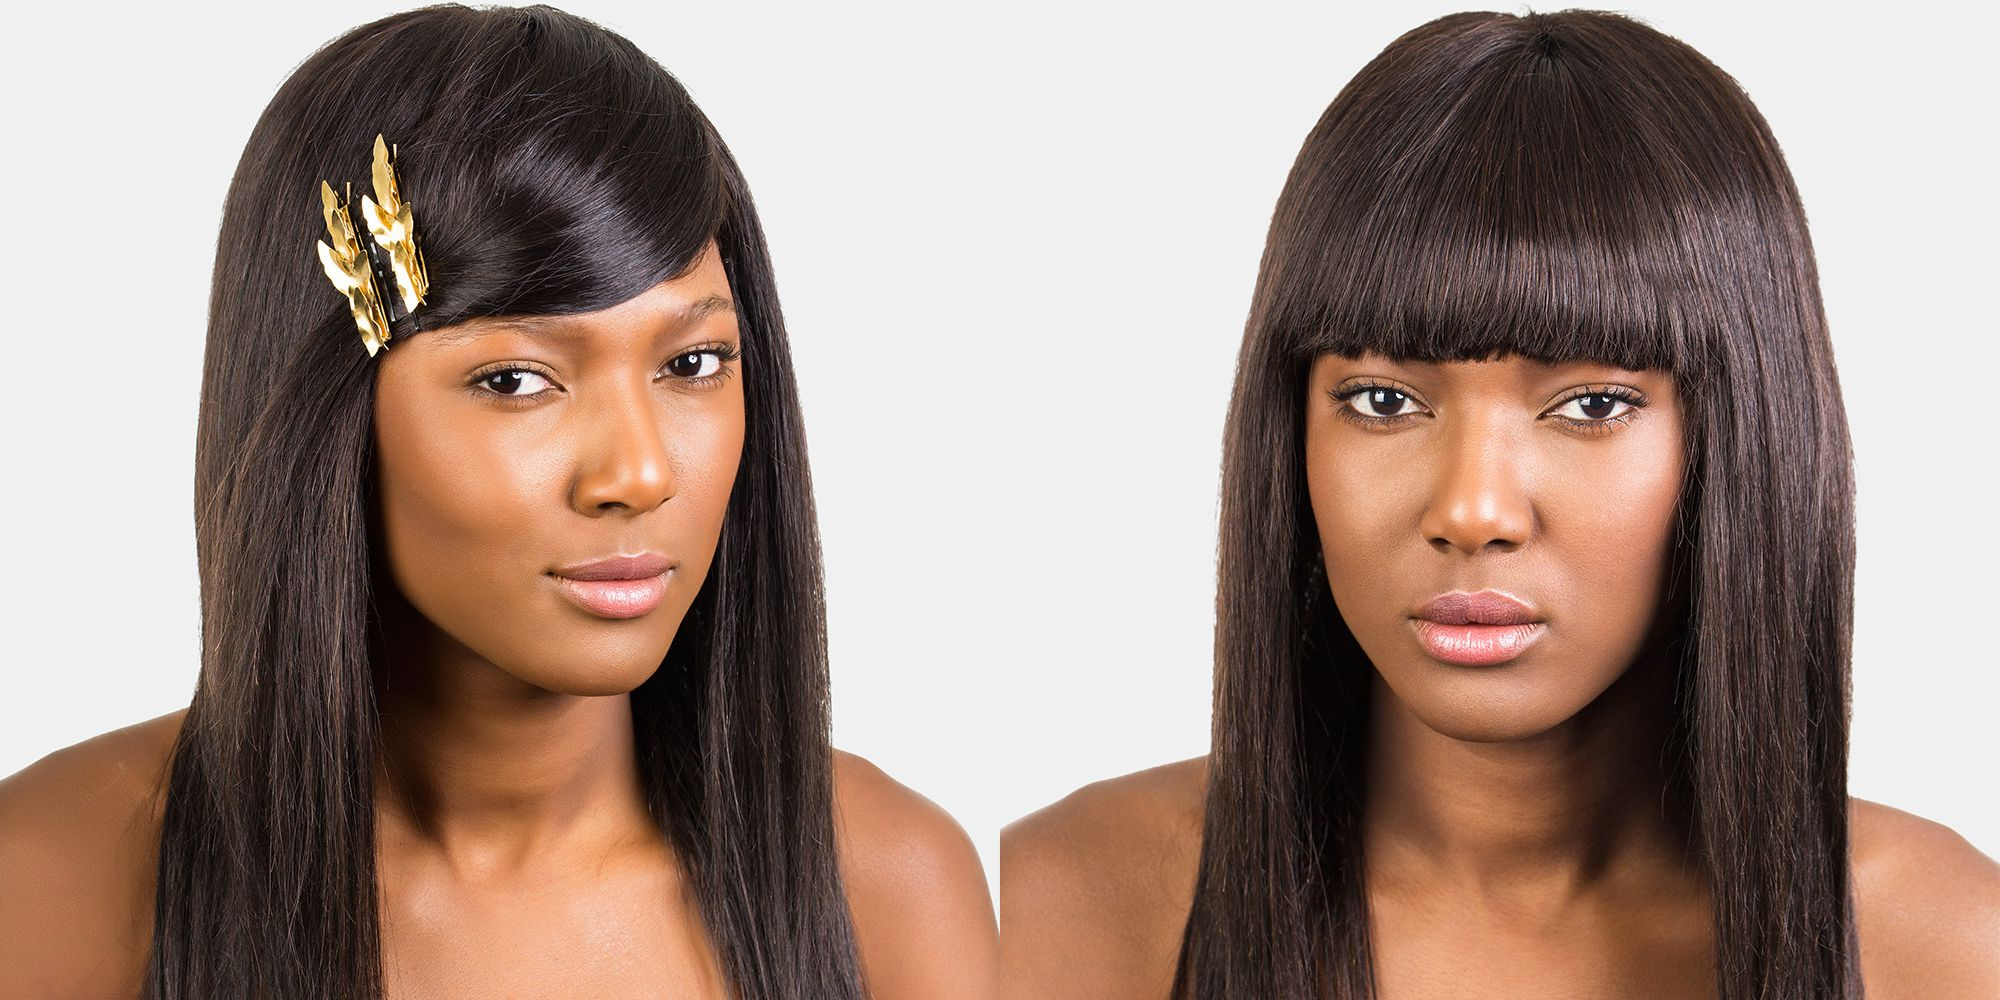 How To Style Bangs – 5 Hairstyles To Keep Your Bangs Out Of With Well Known Halo Braided Hairstyles With Bangs (View 12 of 20)